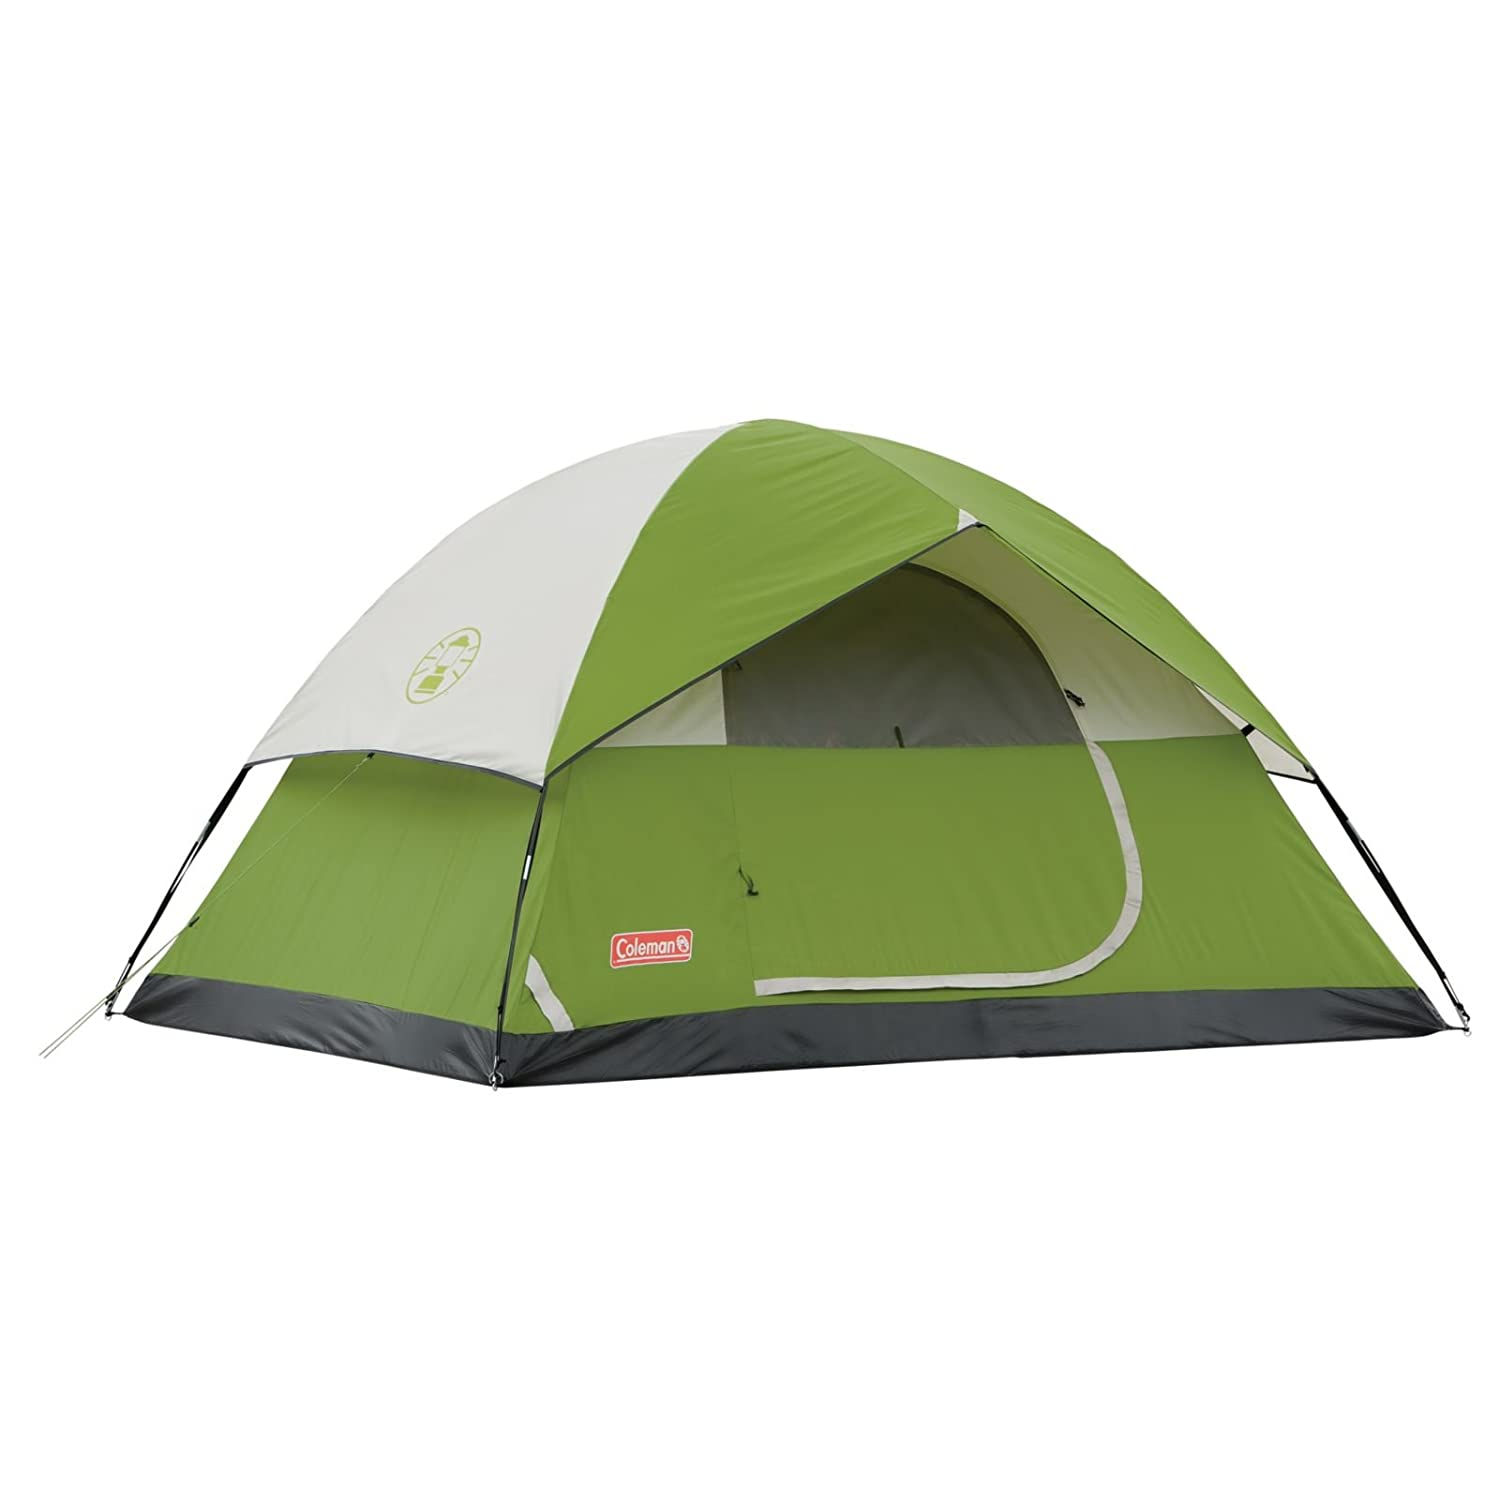 Coleman Sundome Camping Tent Black Friday 2020 Deals